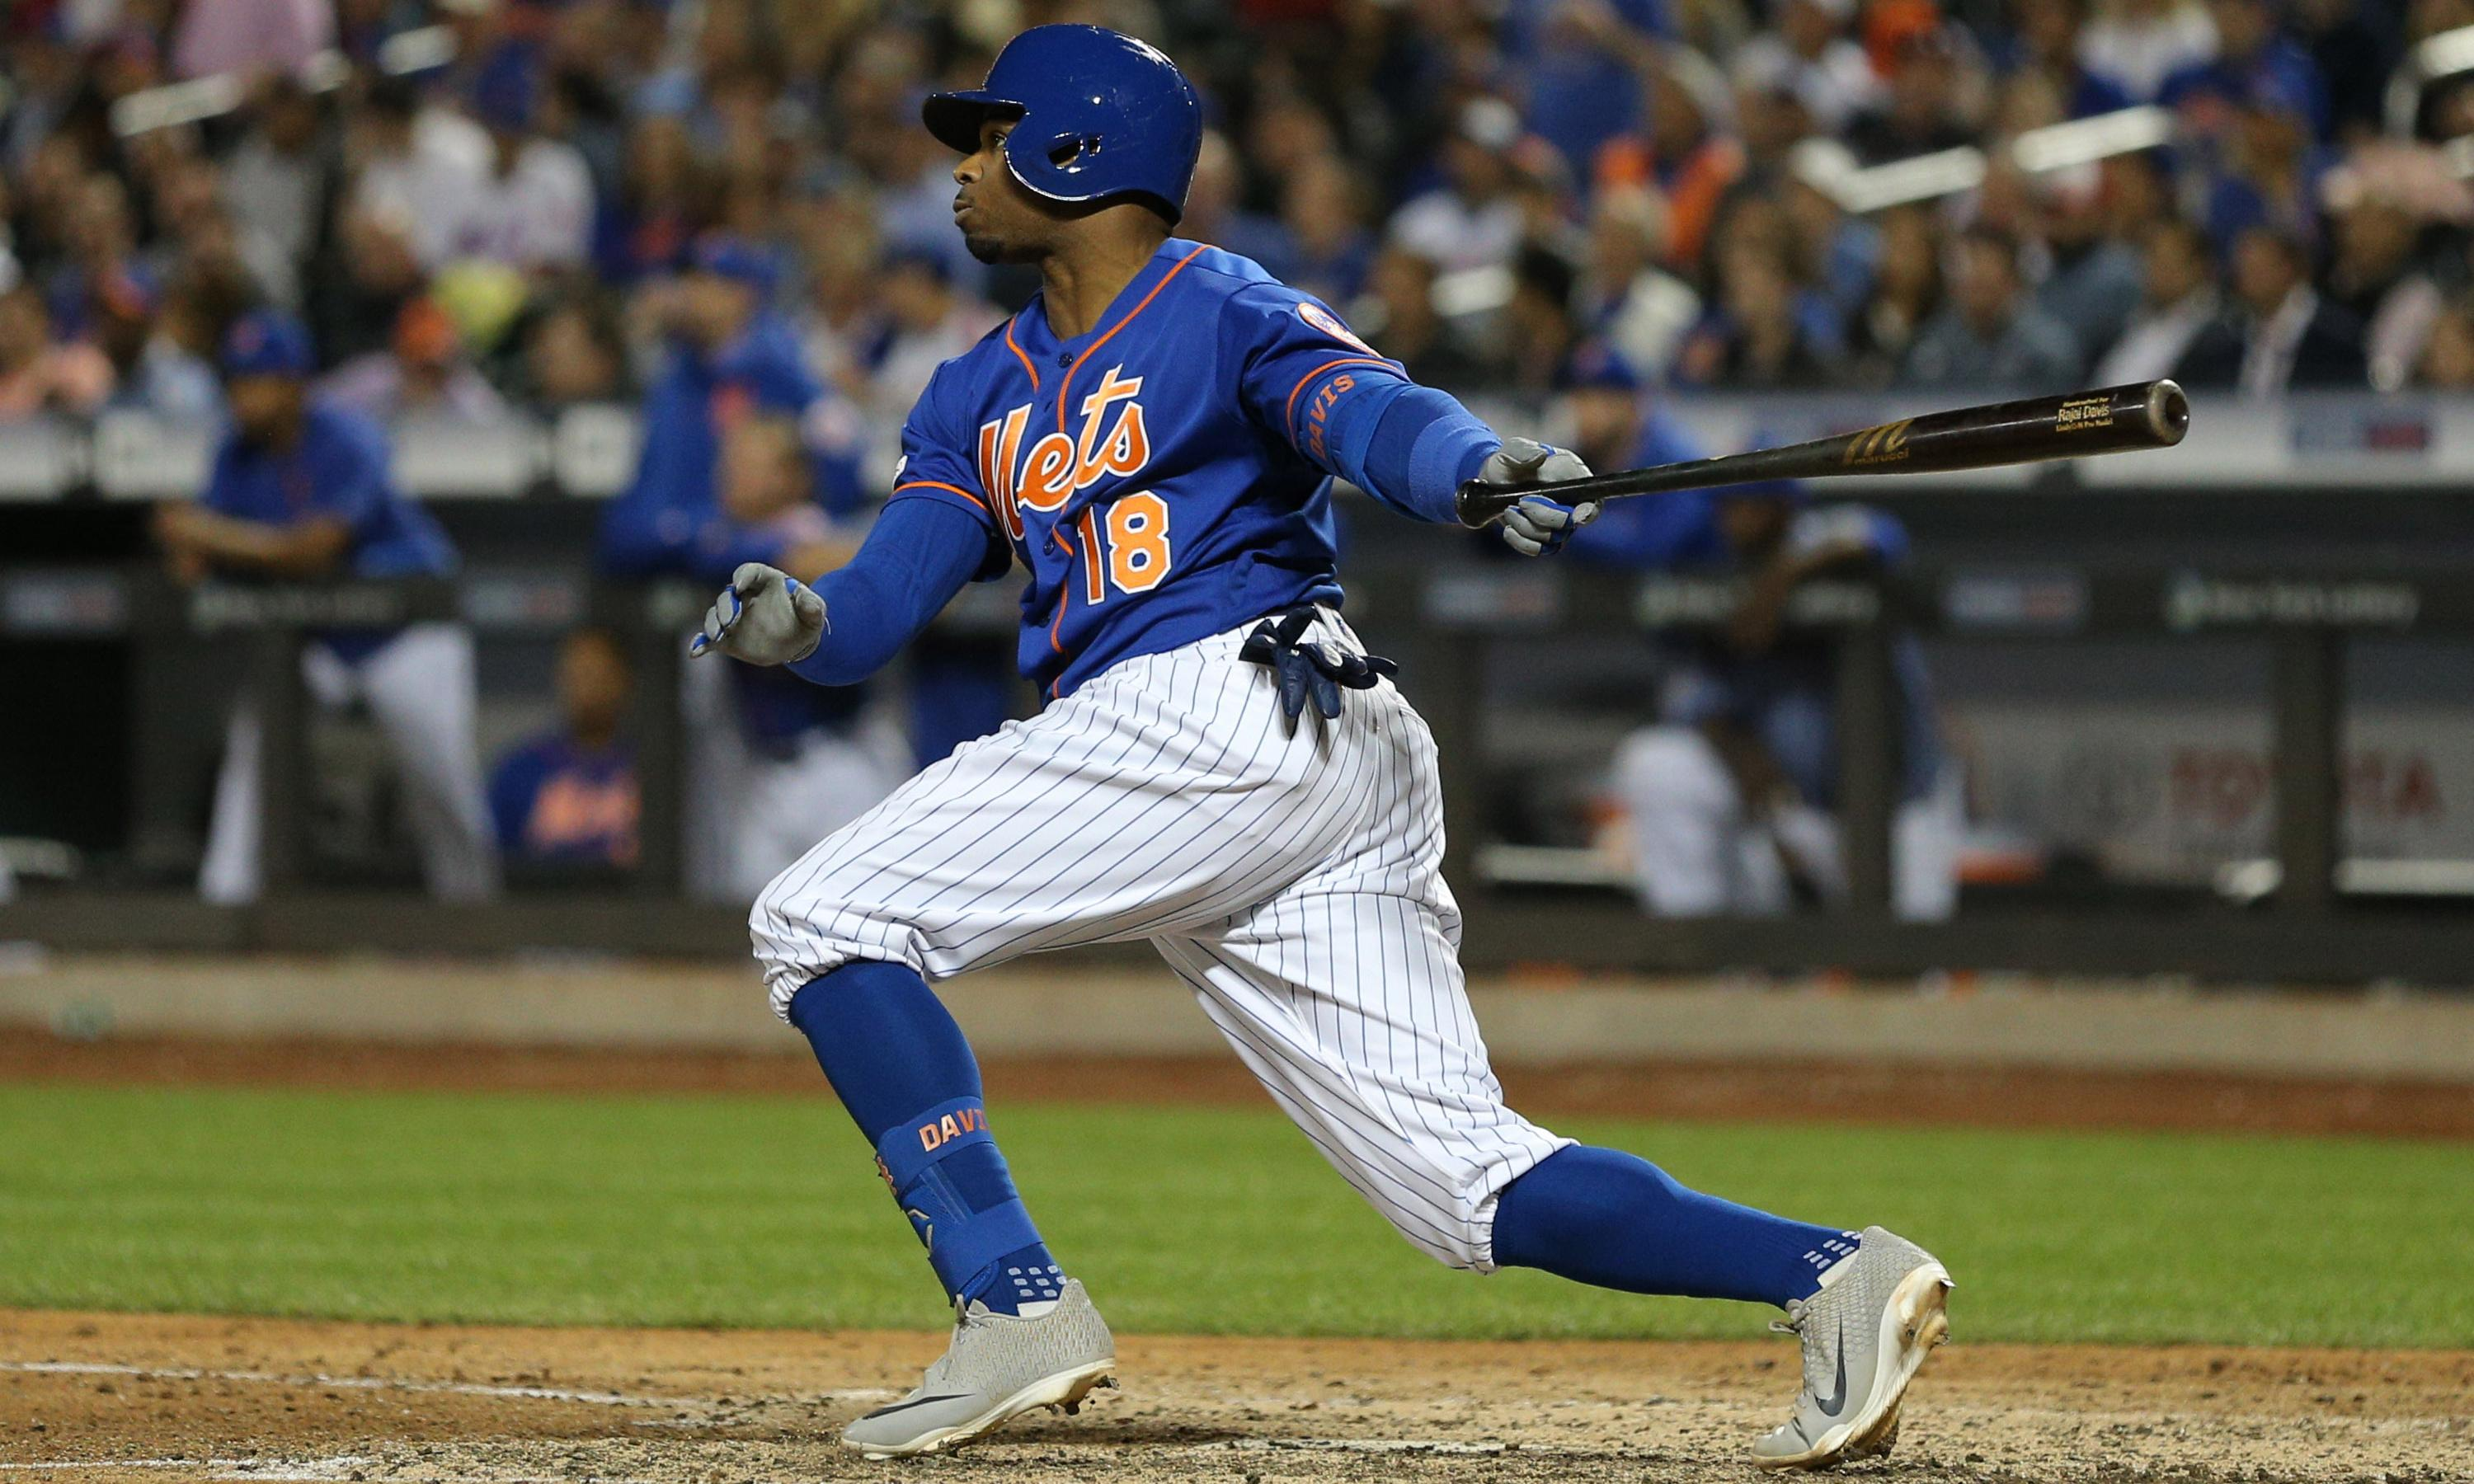 Mets call-up takes 112-mile Uber to stadium then belts winning homer